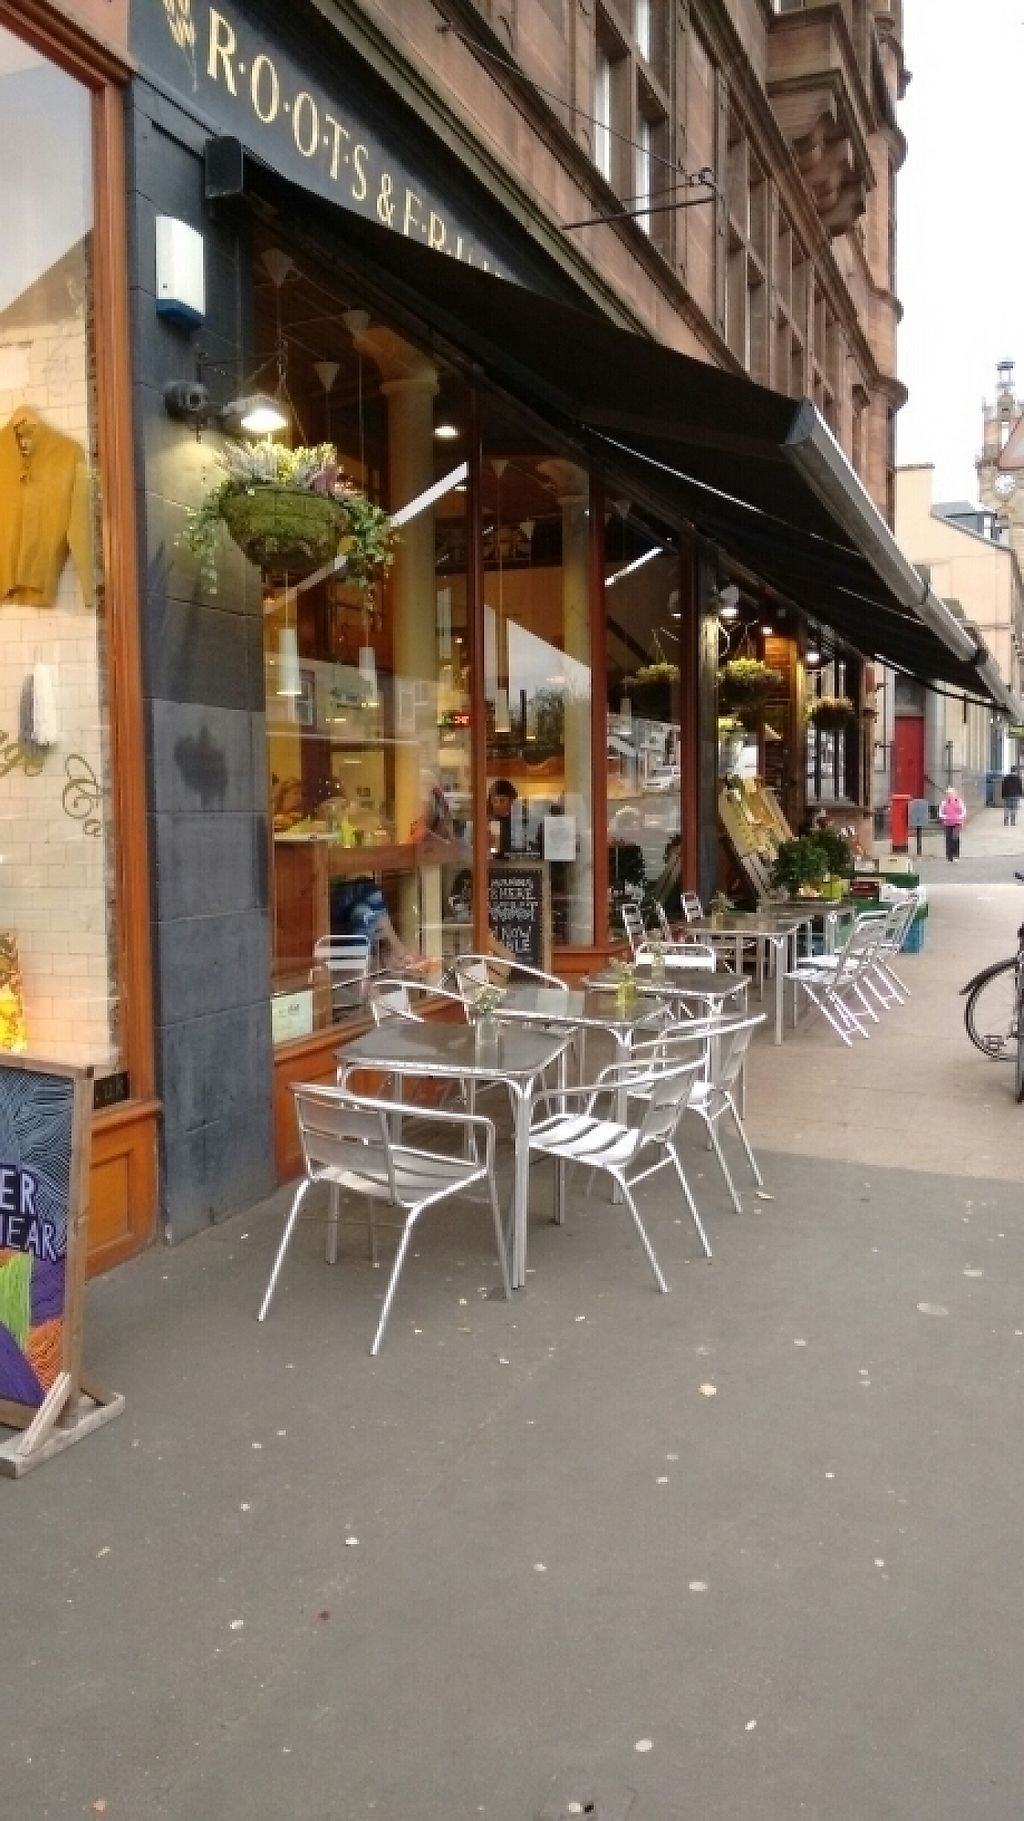 """Photo of Roots  Fruits and Flowers - Great Western Rd  by <a href=""""/members/profile/craigmc"""">craigmc</a> <br/>deli cafe seating <br/> November 9, 2016  - <a href='/contact/abuse/image/28899/187970'>Report</a>"""